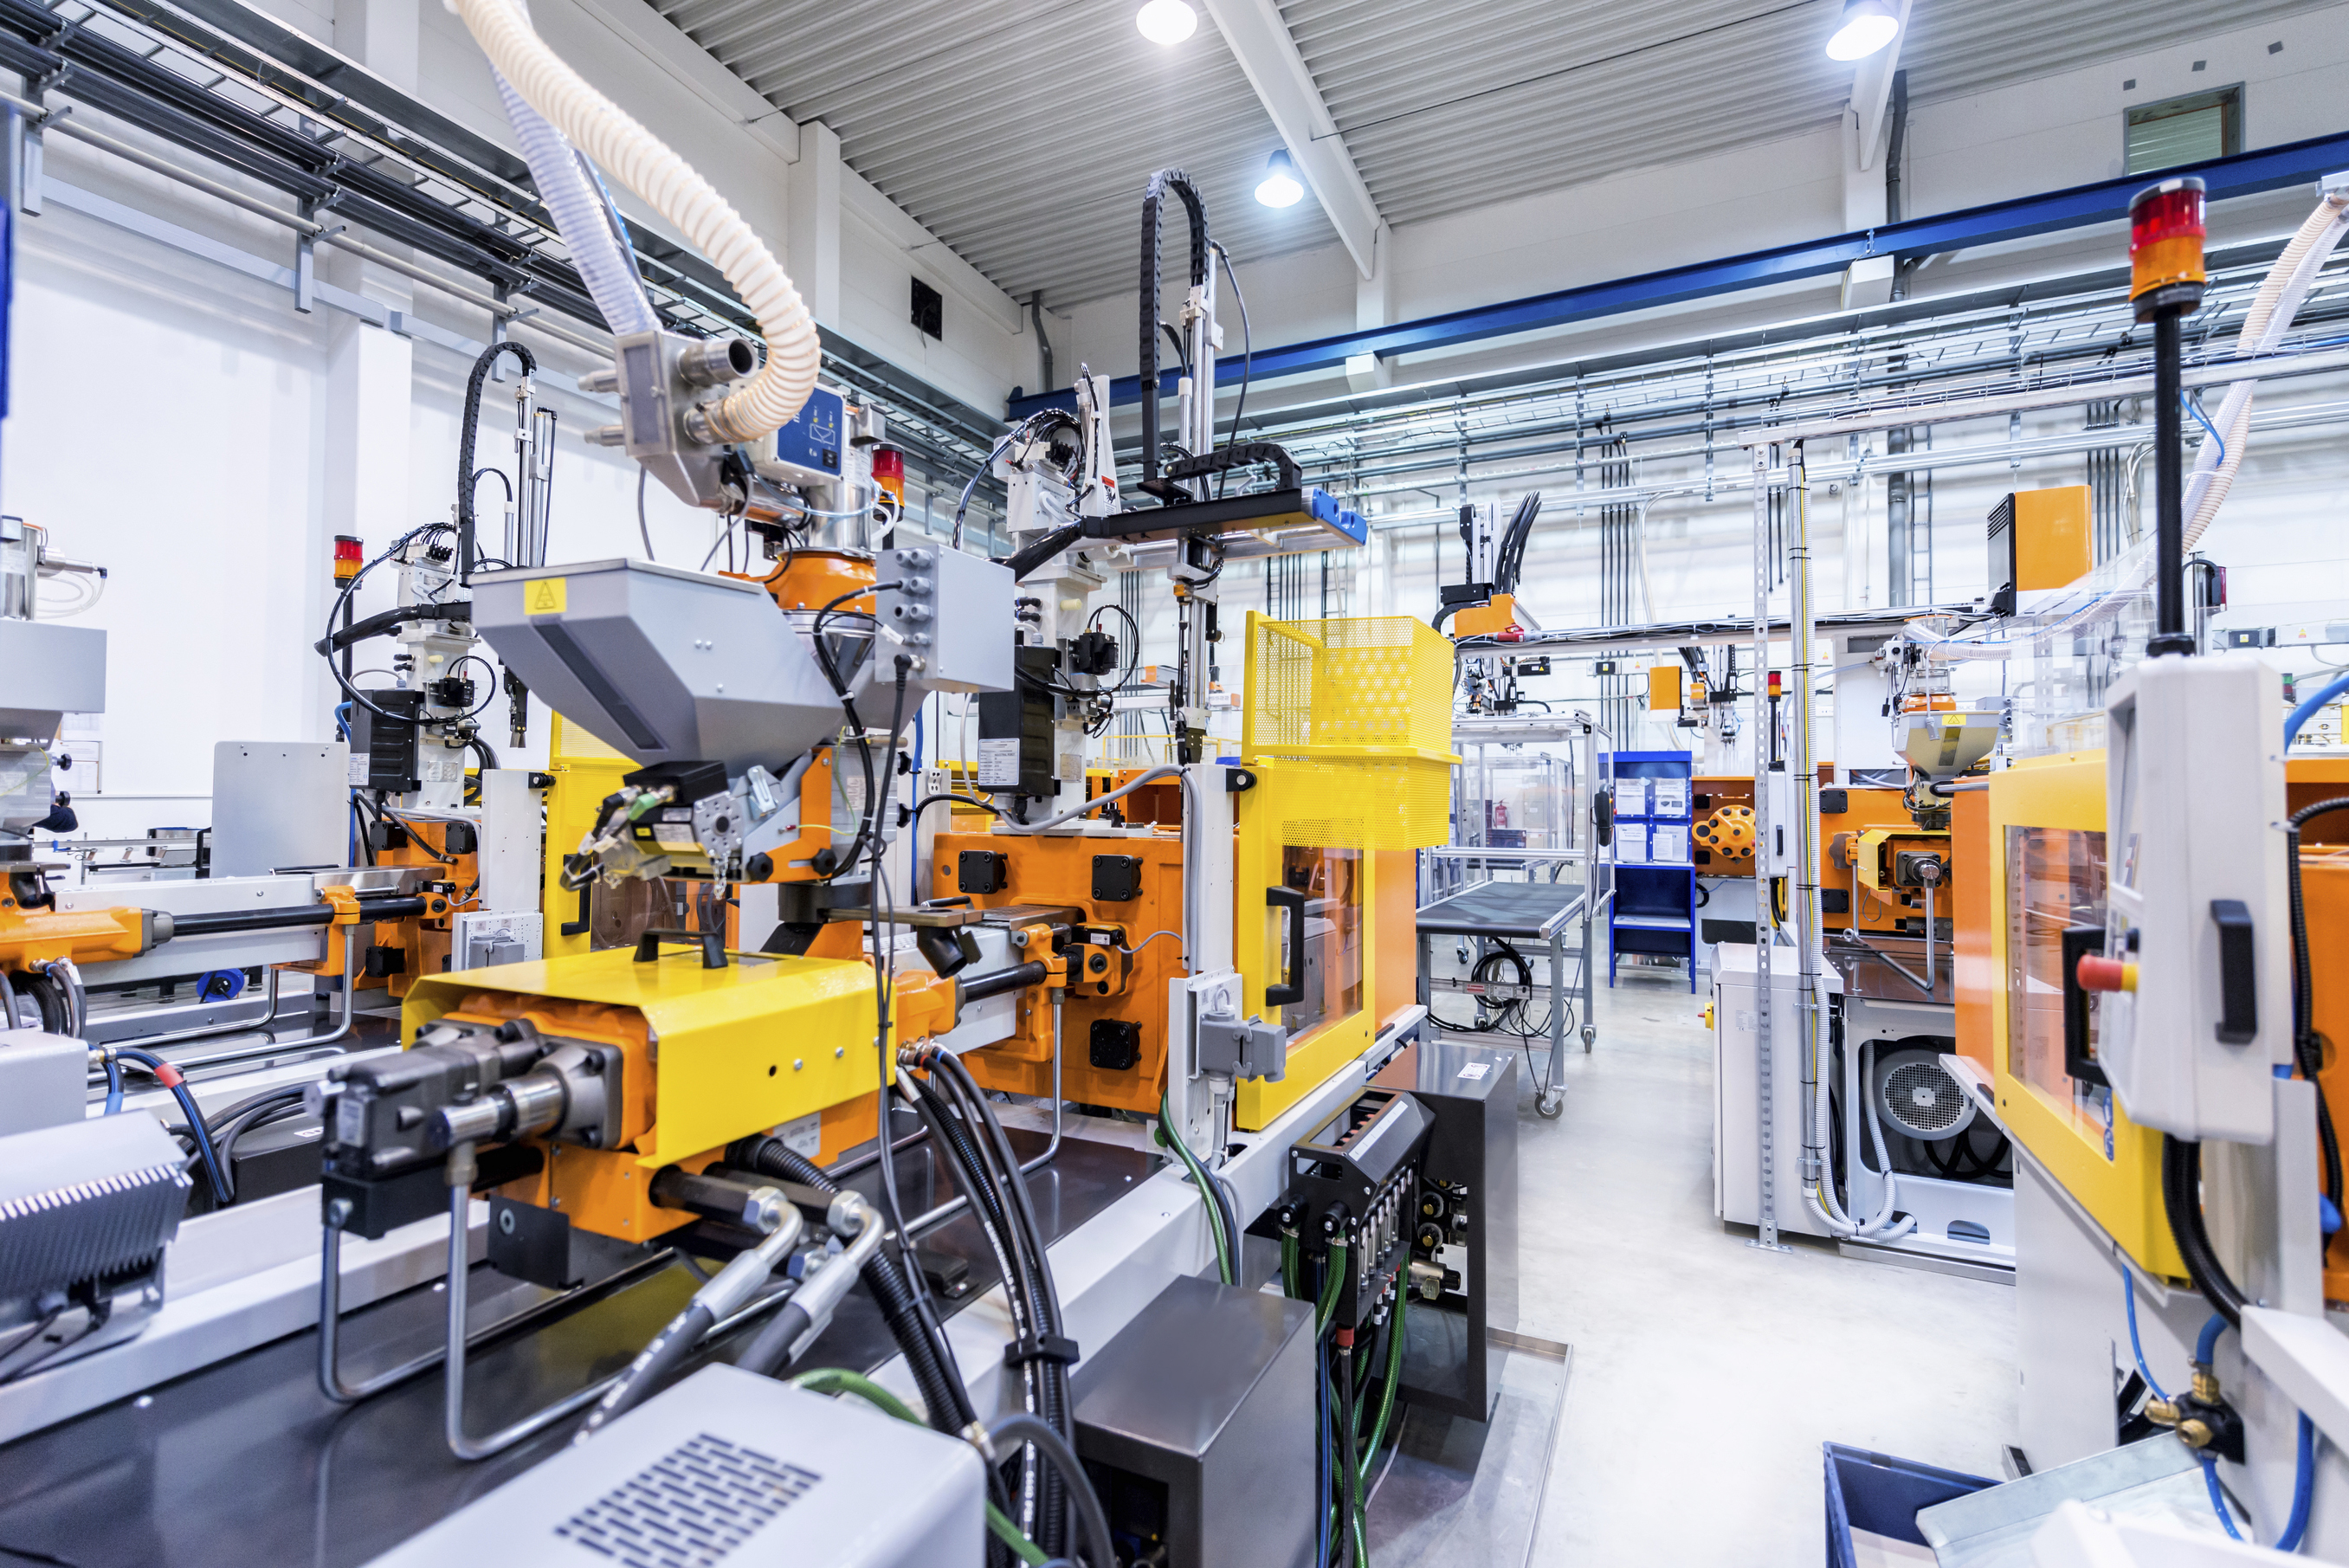 Horizontal color image of large group of automated injection moulding machines for plastic parts production. (iStock Photo)